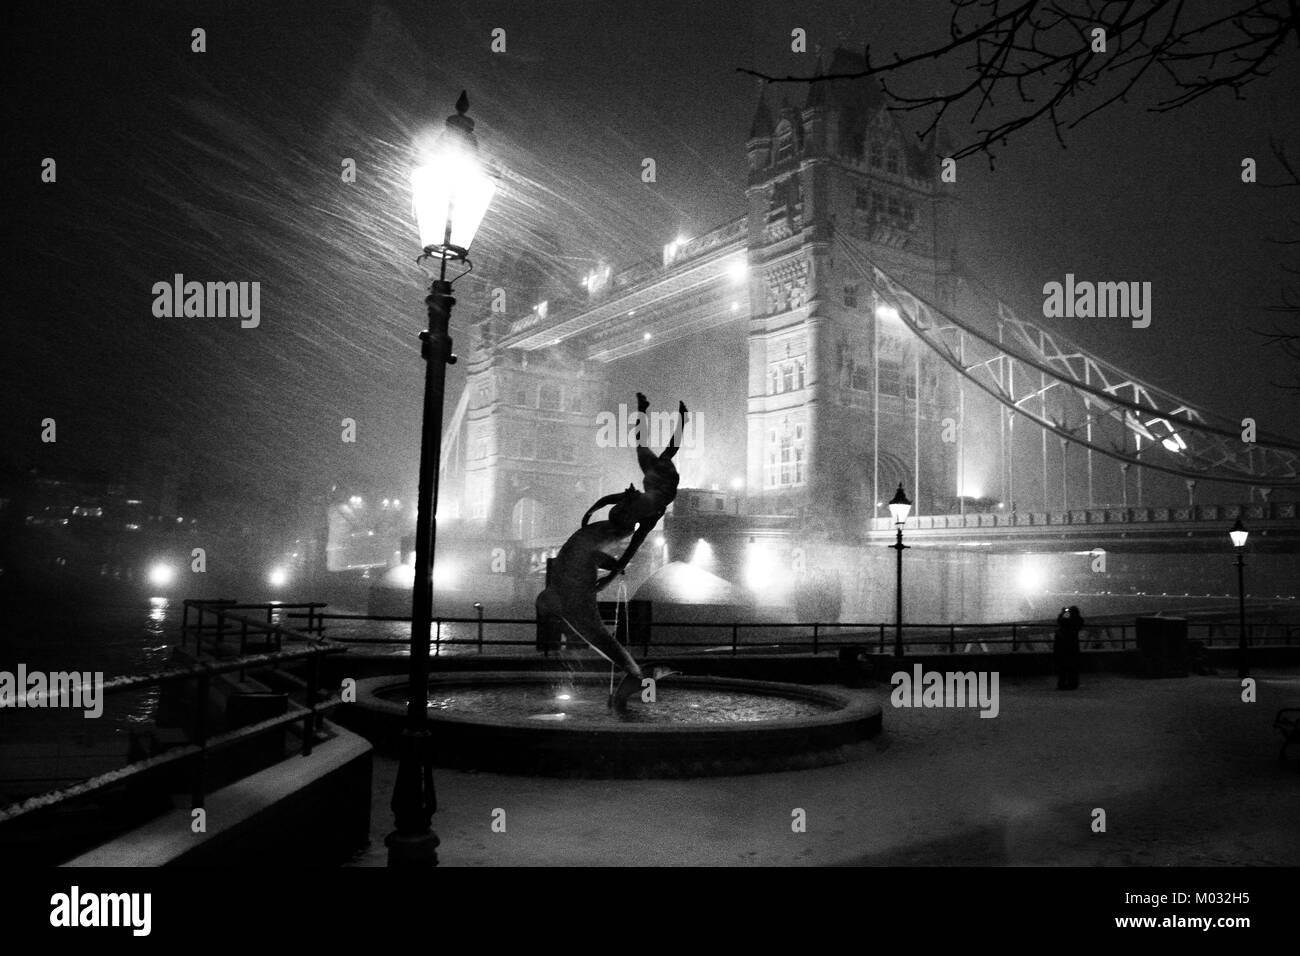 Tower Bridge London in a snow storm at night, black and white with David Wynne sculpture of dolphin and a girl in - Stock Image